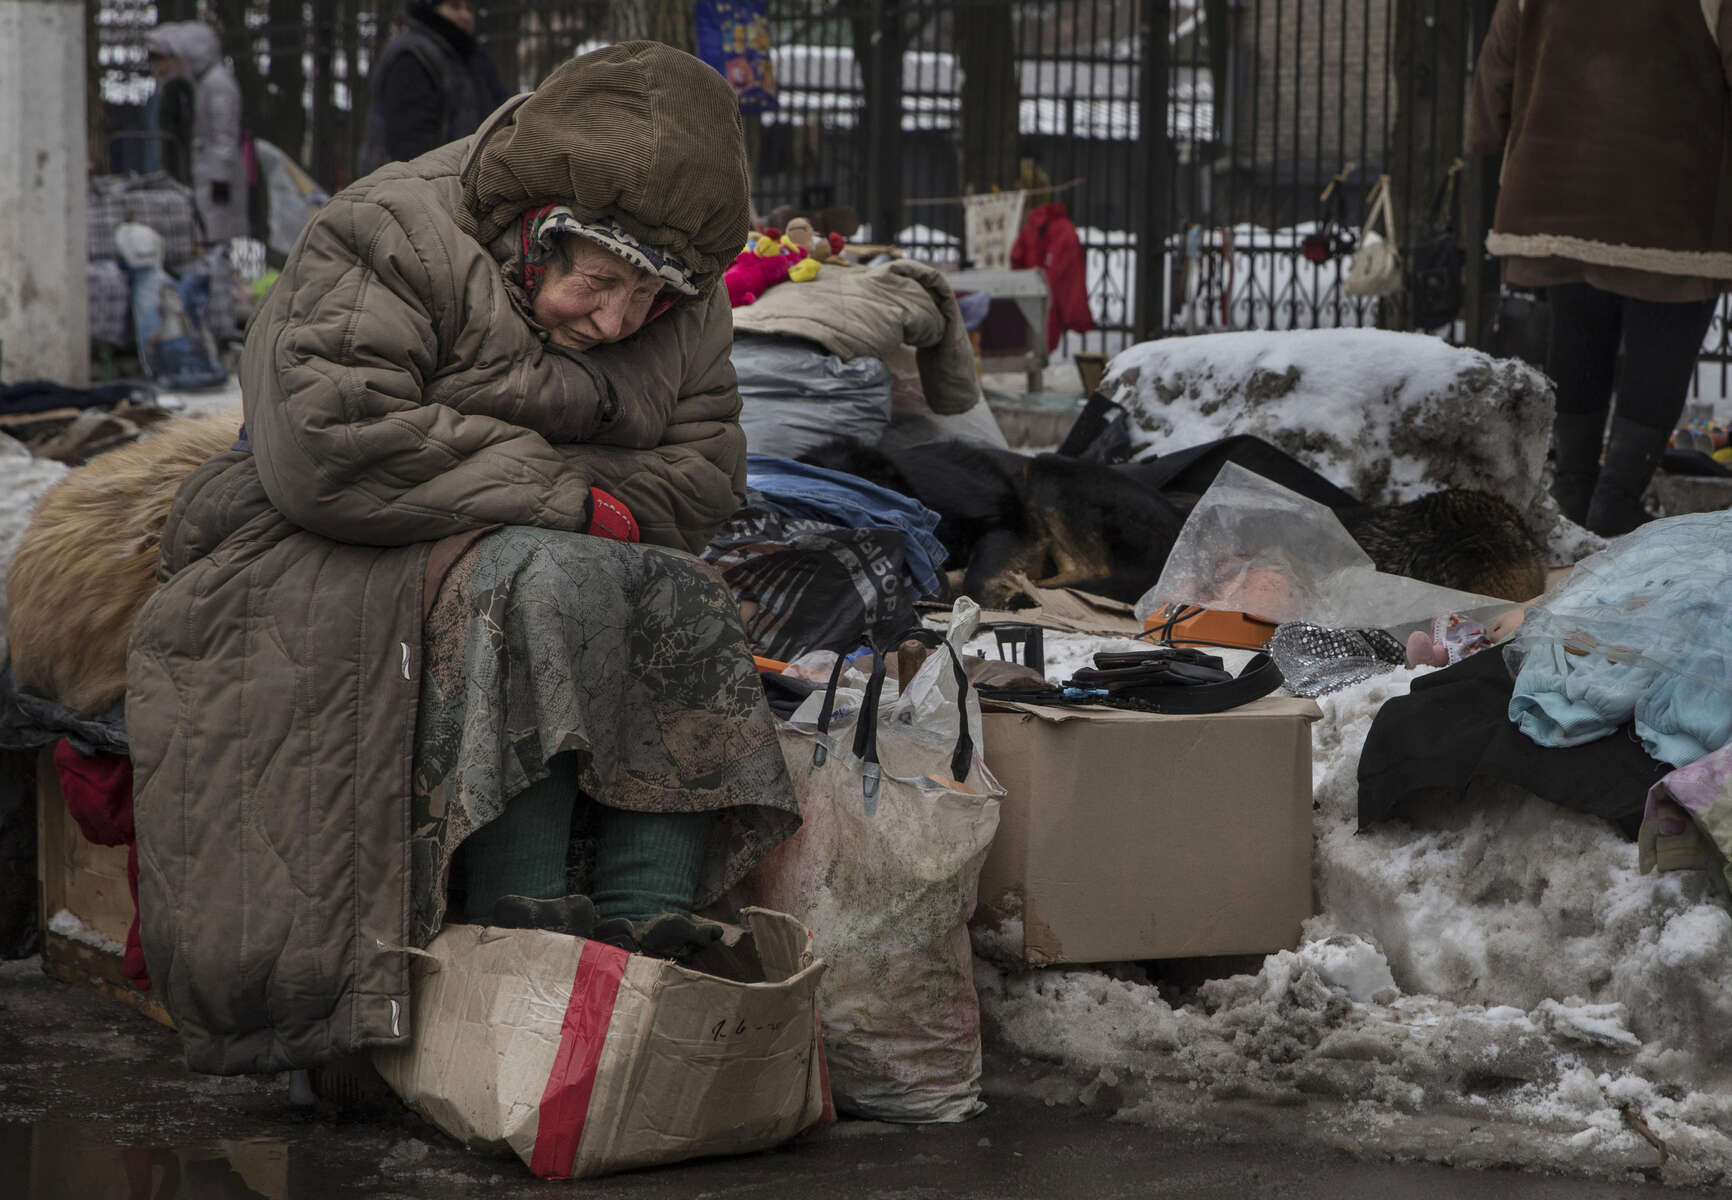 Donetsk, People's Republic (DPR) : Galina Mikhailovna , age 79, waits for customers at a second hand market in suffering during a cold winter day in February. She sells used goods that others give to her in the market for pensioners, sits in the snow with some street dogs. She has no pension, she never went to Ukraine to register, claims she can'Äôt afford to travel to the other side every 57 days which is required by the government. She is in  debt so can't afford to pay for heat and water in her apartment anymore.